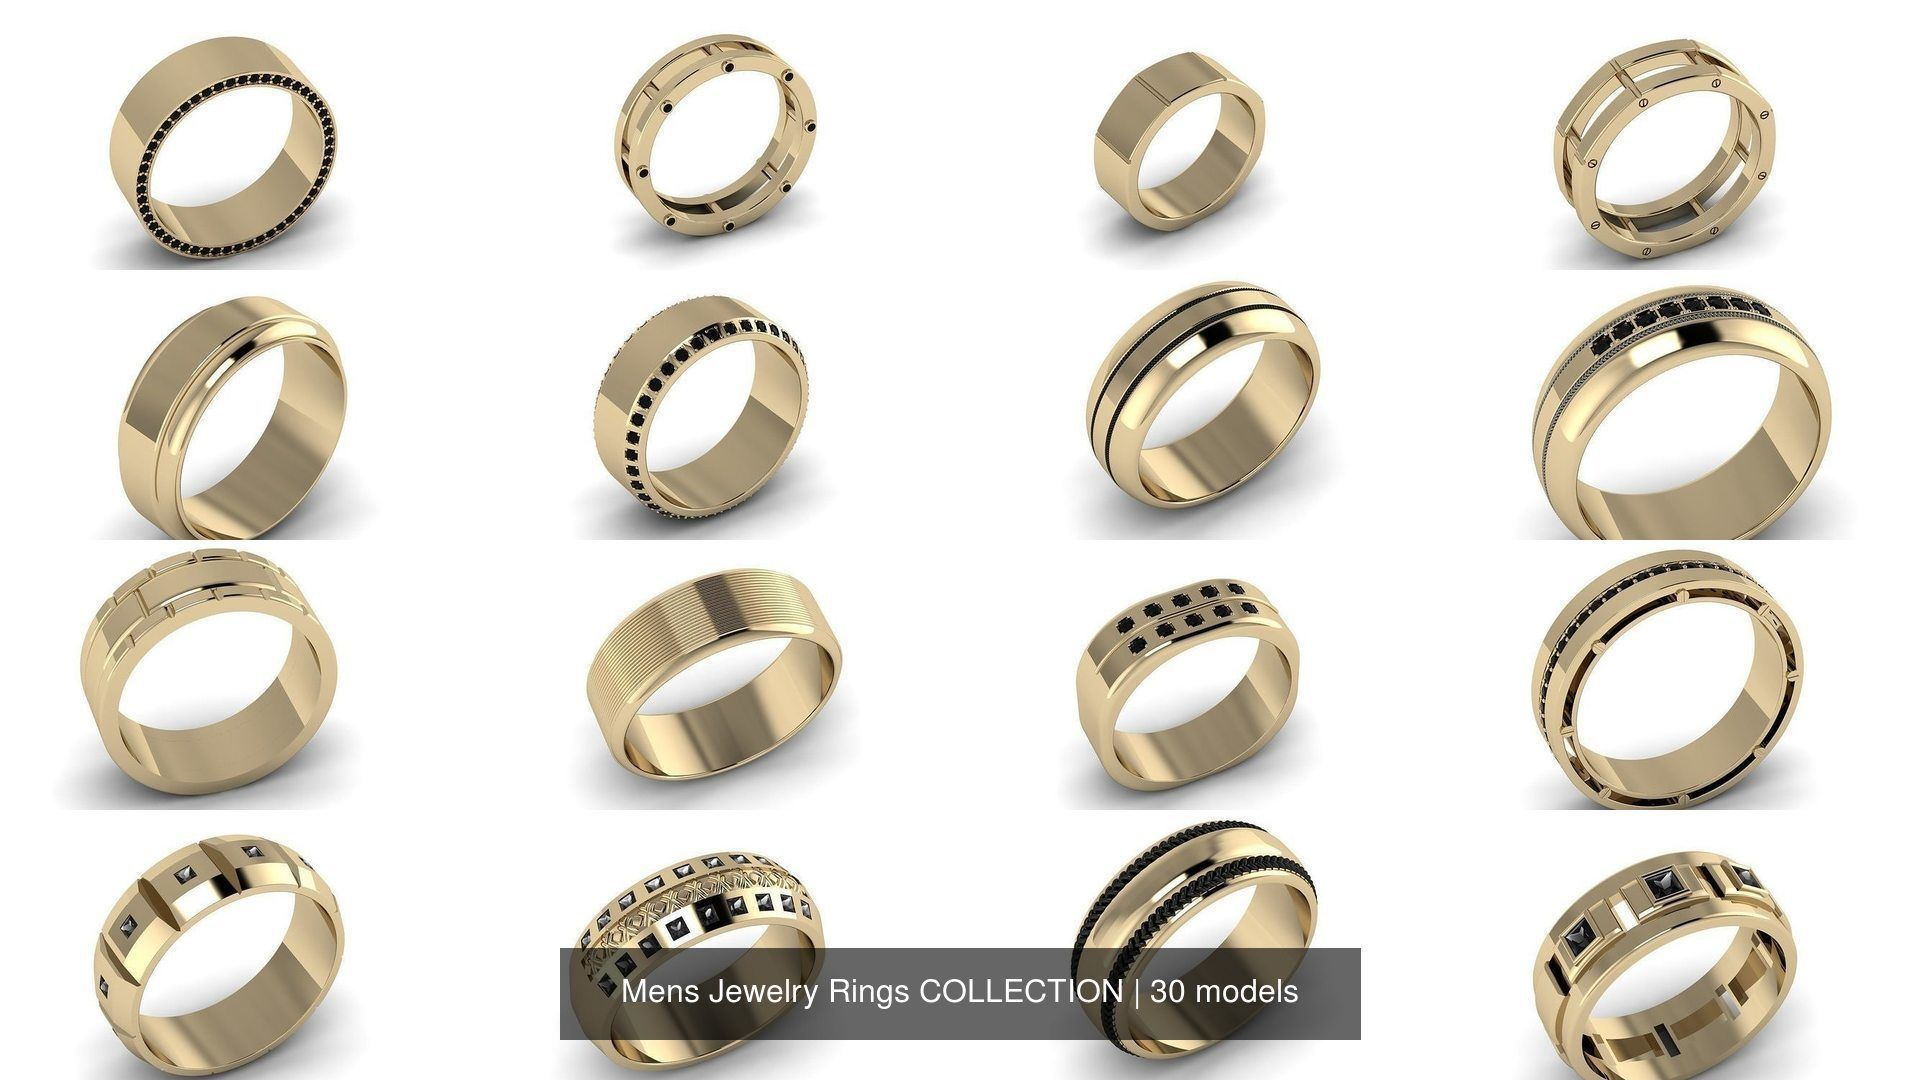 Mens Jewelry Rings COLLECTION